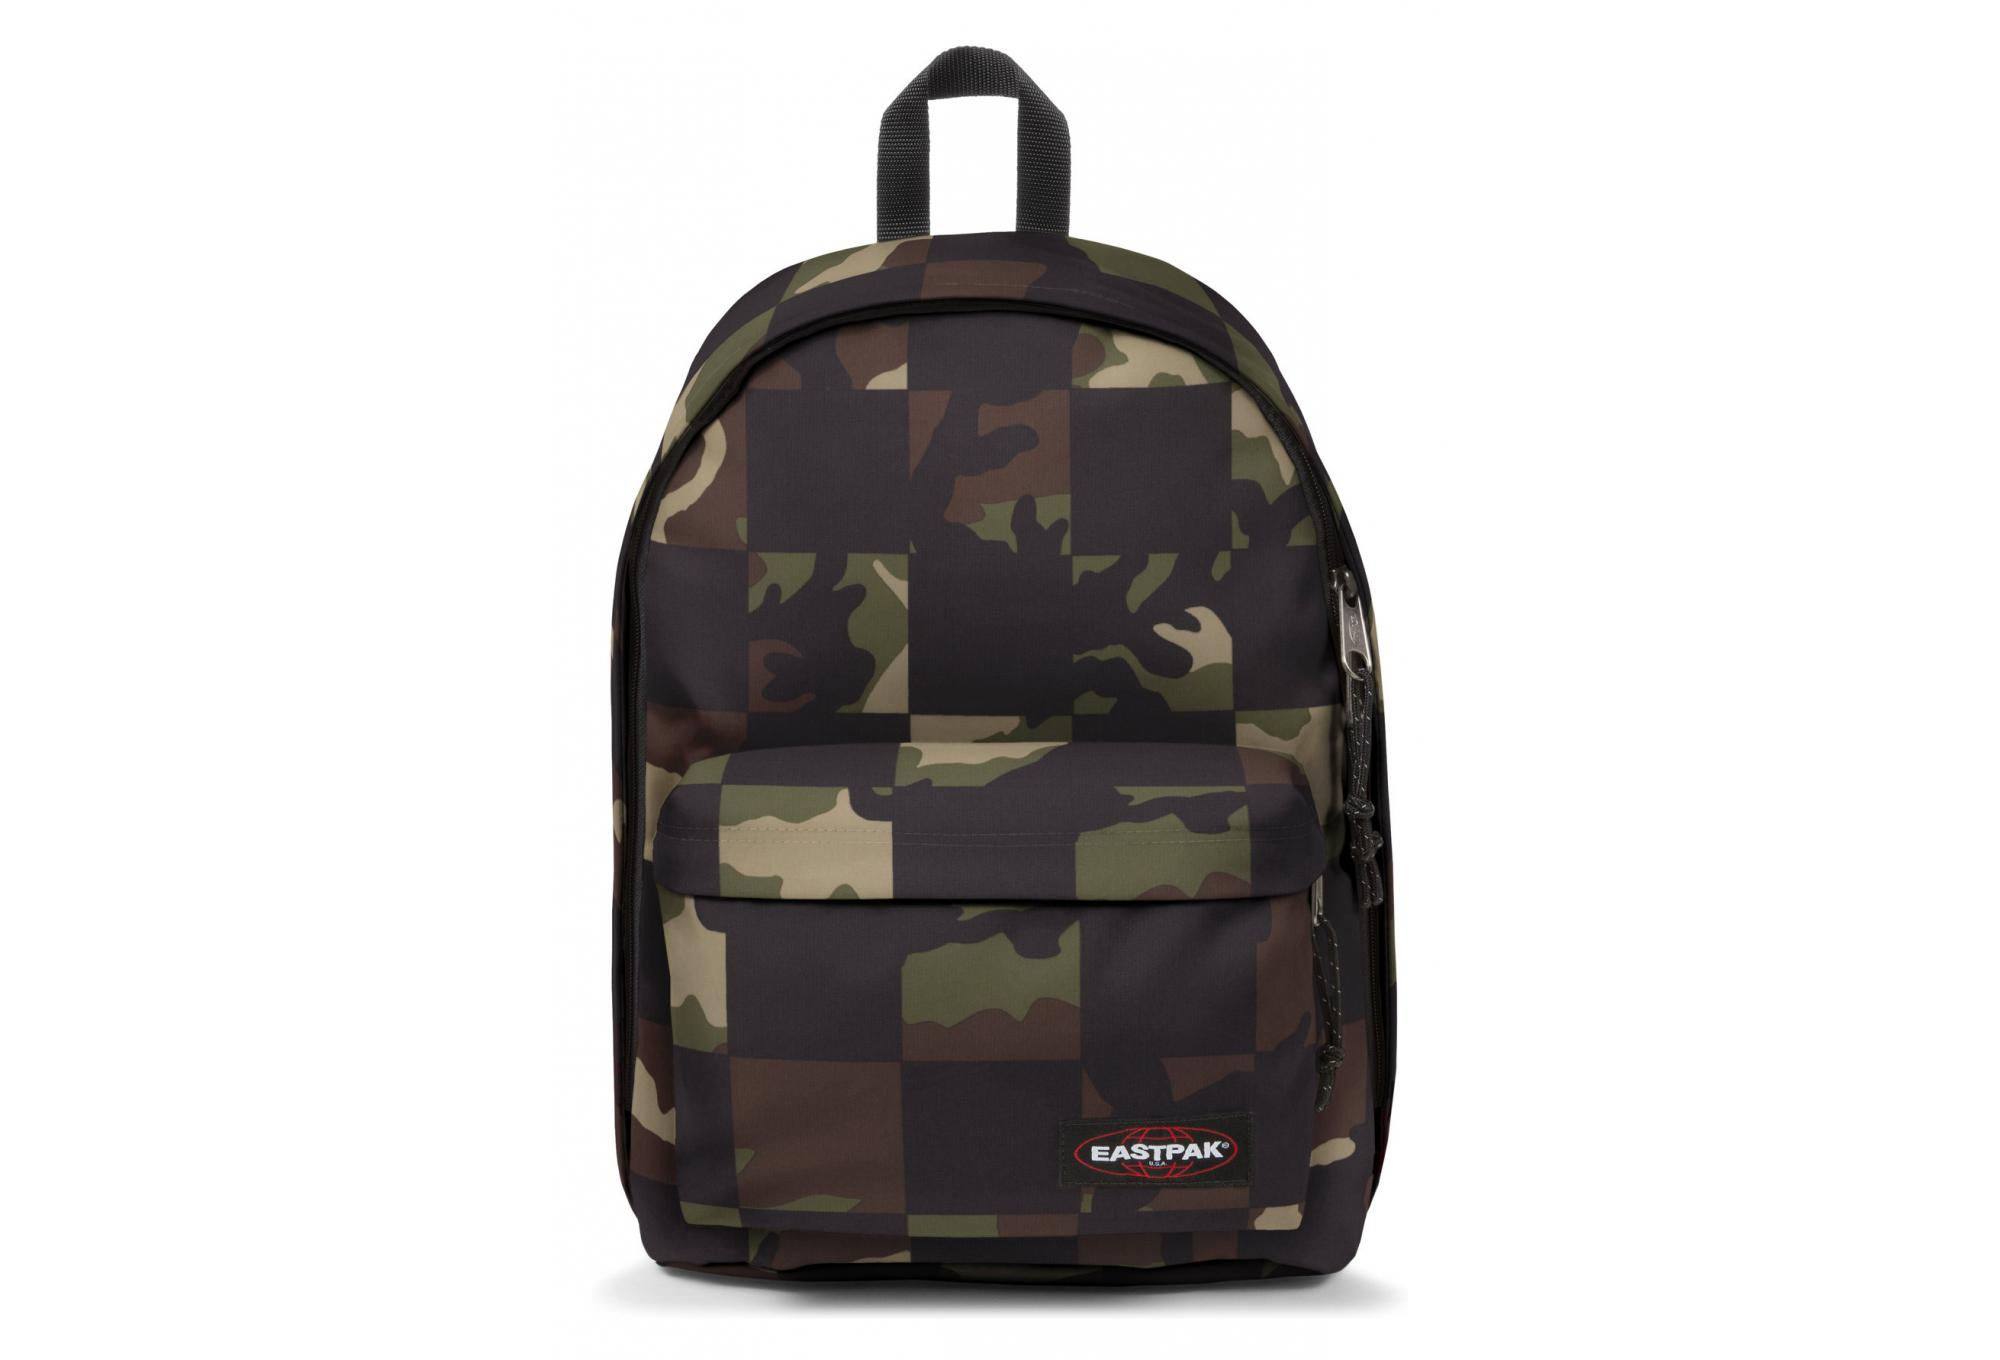 Camopatch Black Office Dos Out Eastpak Sac À Of xwvq1xfY